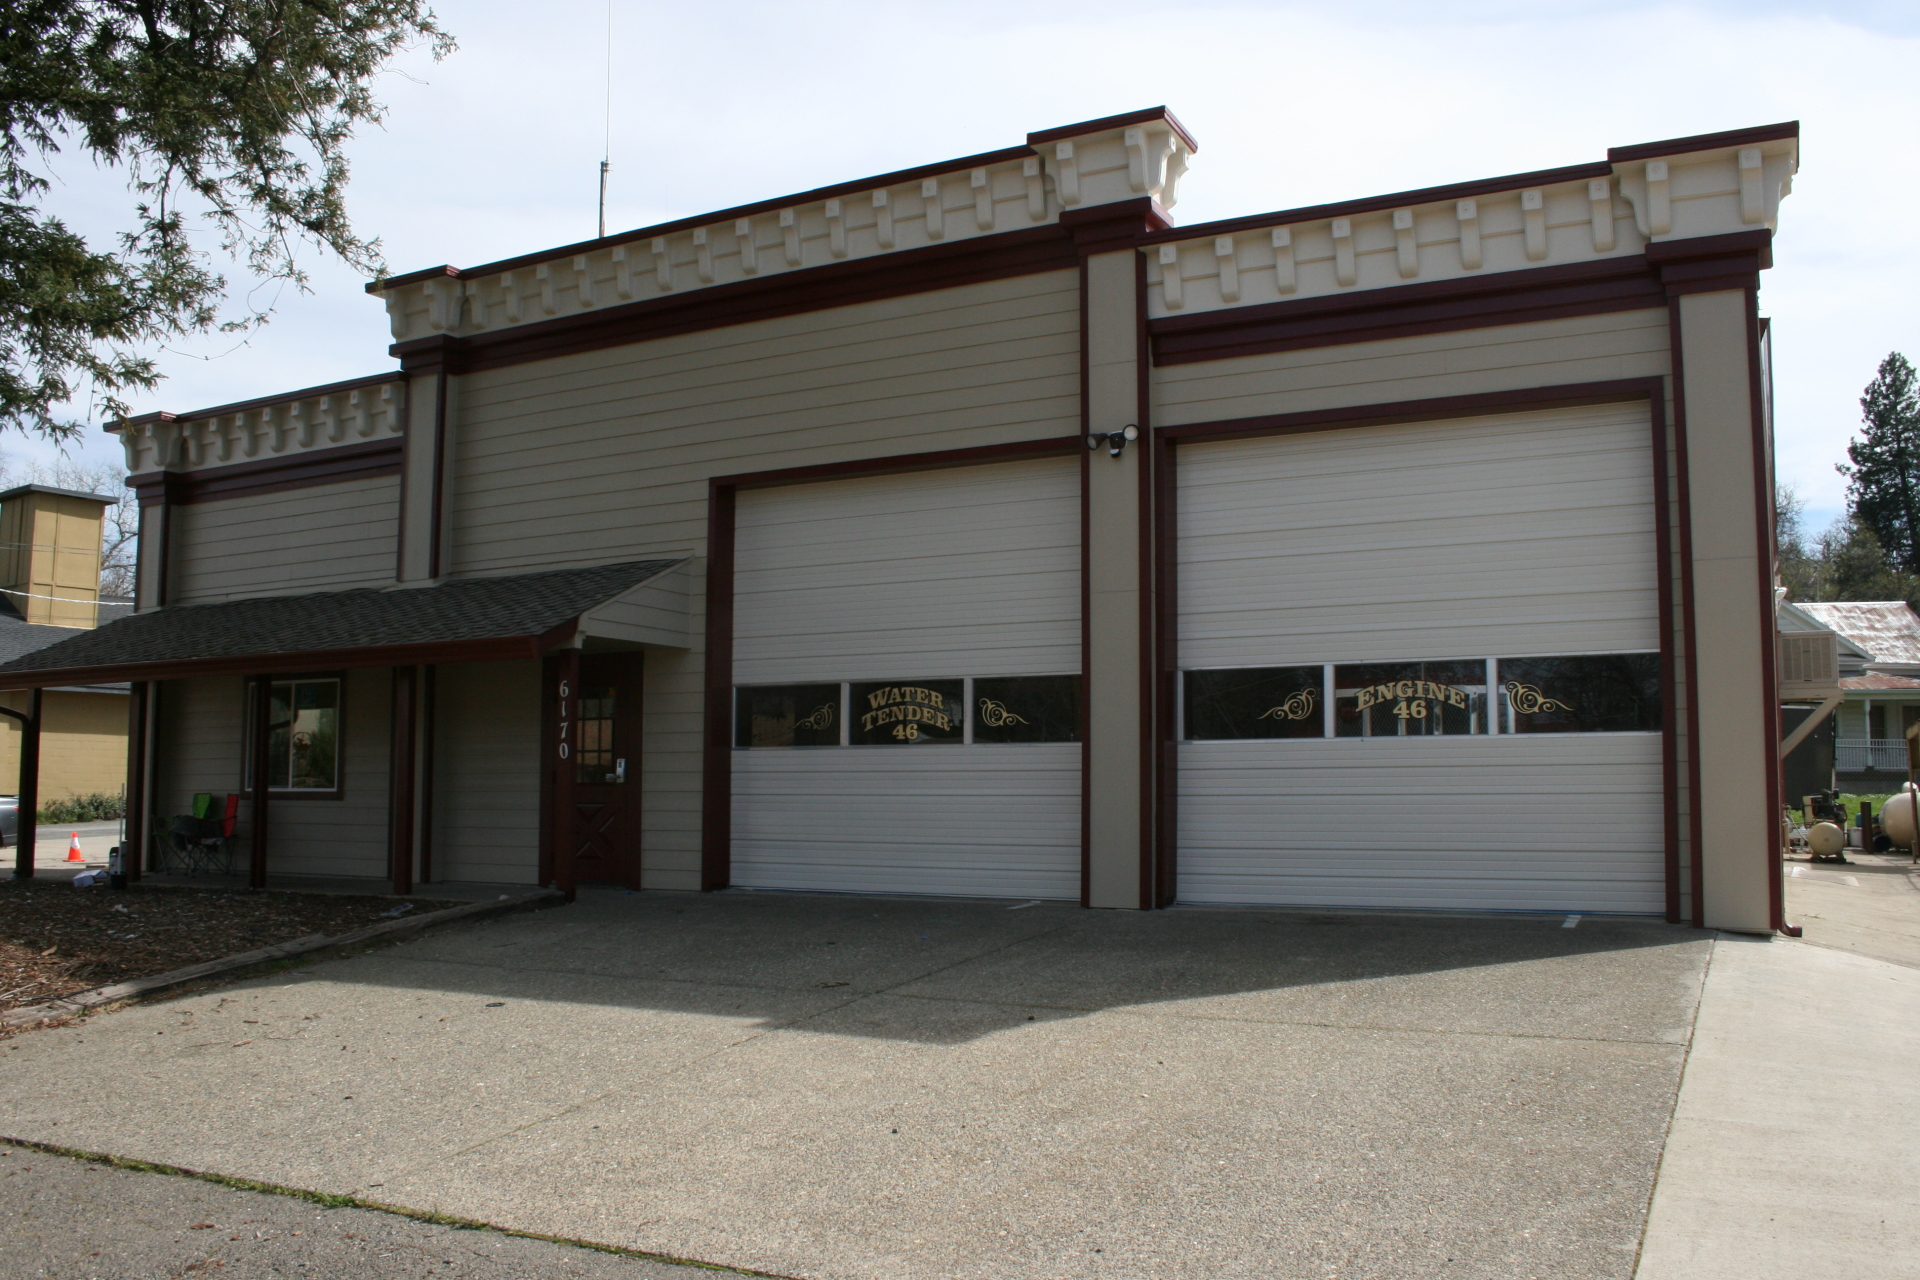 Eldorado Fire Station